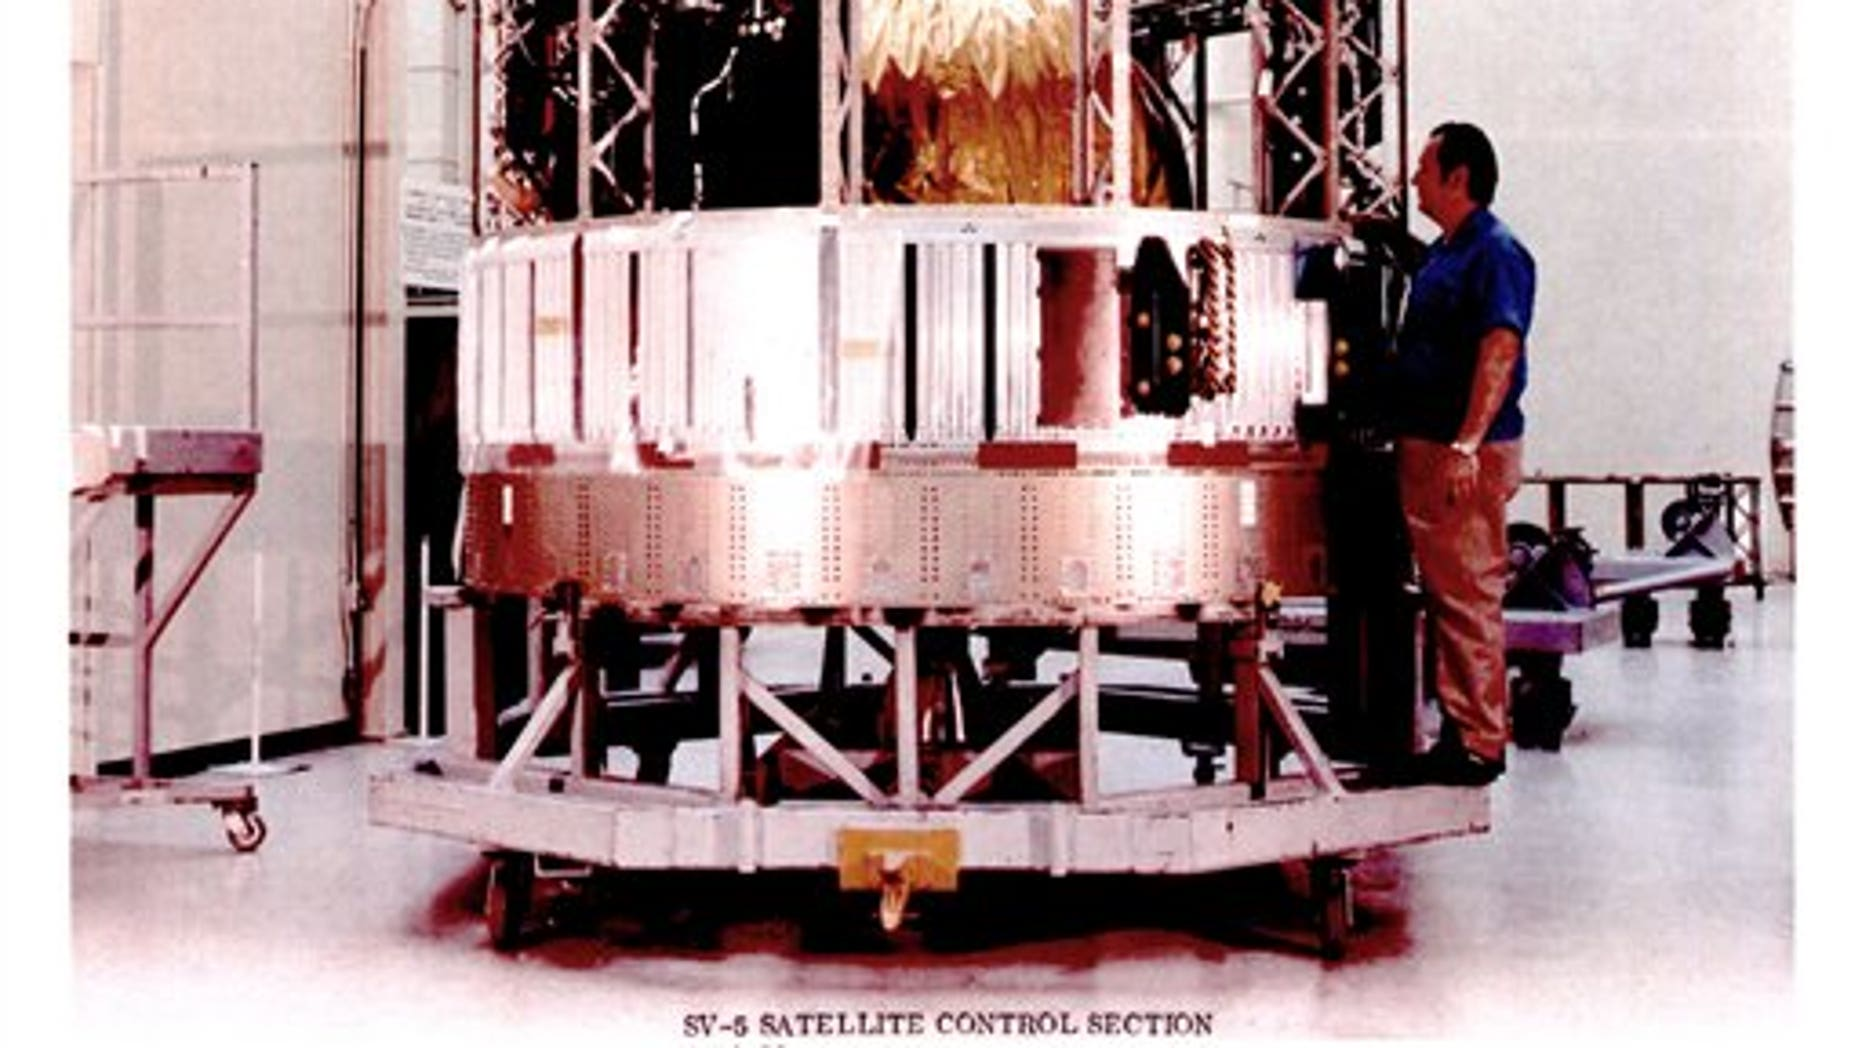 This undated image made available by the National Reconnaissance Office is a declassified image of a man standing next to a satellite control section from the Hexagon program.